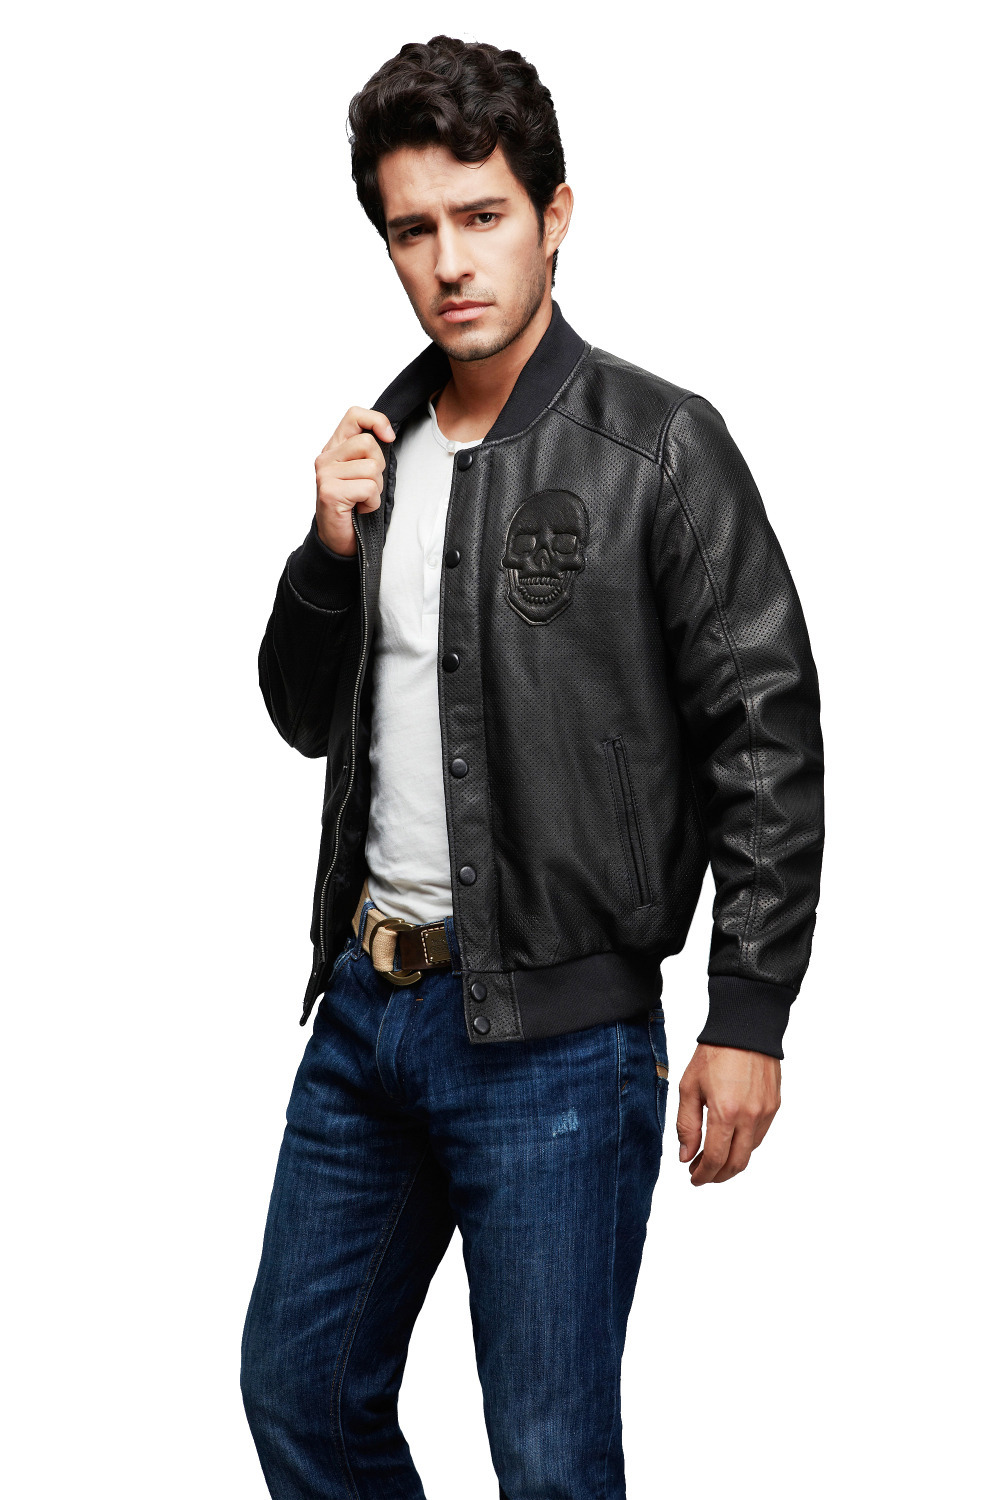 Find great deals on eBay for cheap mens leather jackets. Shop with confidence. Skip to main content. eBay: Mens cheap fleece-lined jackets pu leather casual coat warm slim parka outwear. Brand New. $ From China. Mens Fitted Bomber Leather Jacket Clearance Reduced Cheap NEW Black. Brand New. $ From United Kingdom.